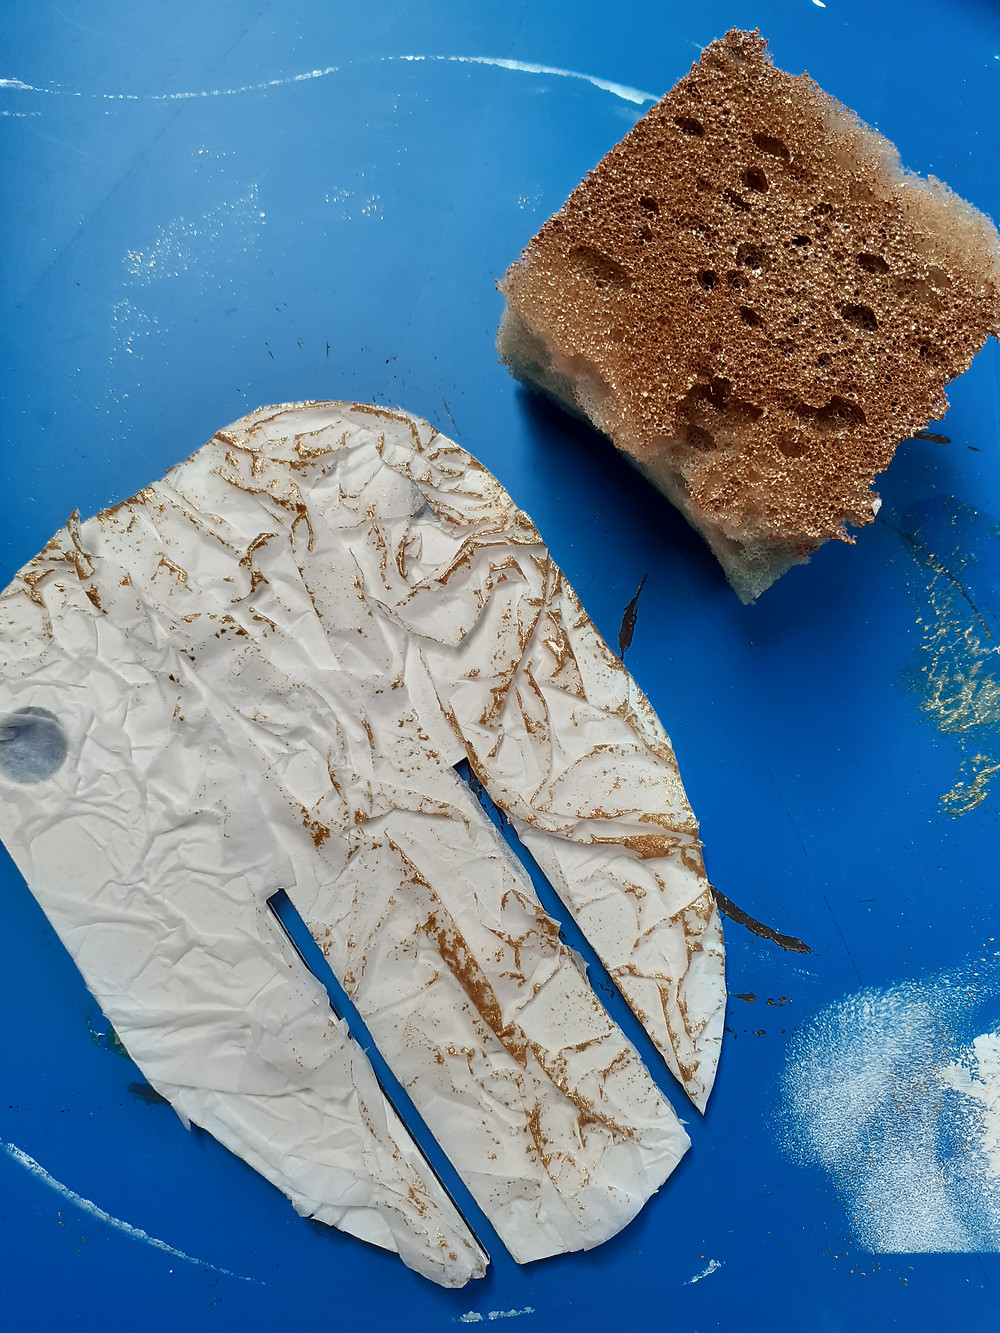 Sponging tissue with gold paint